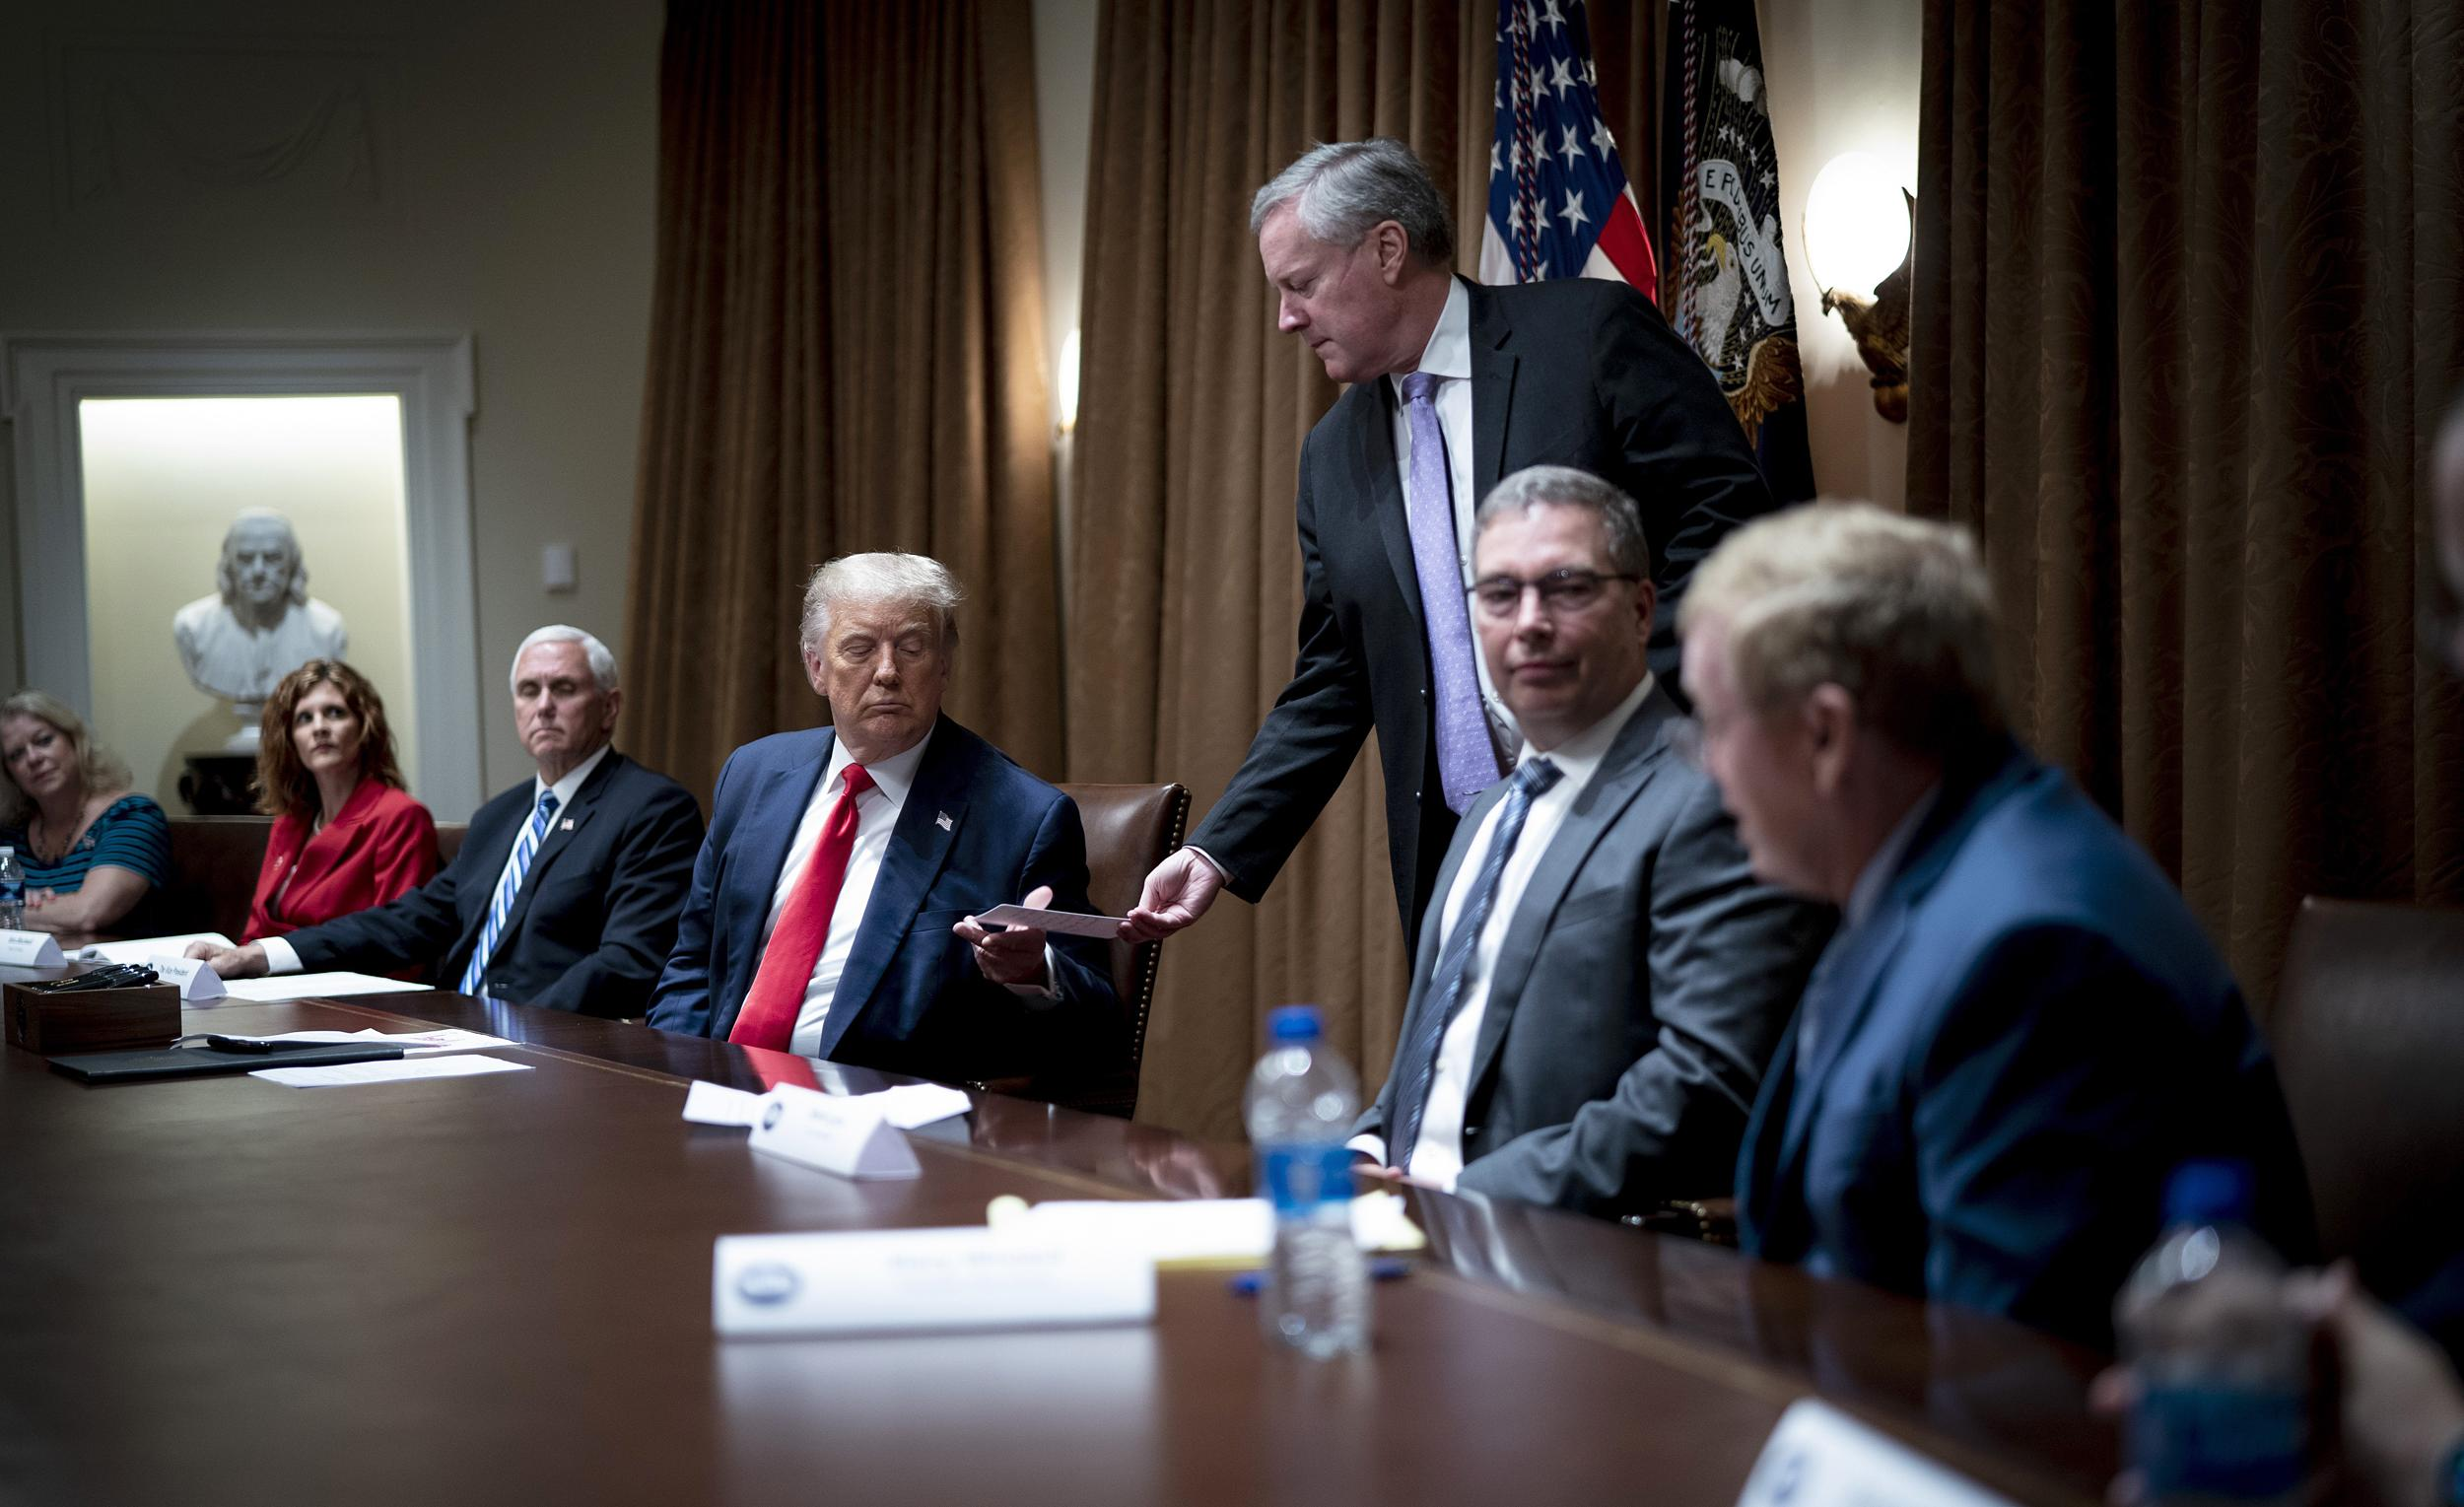 'Art of the deal'? Trump's negotiators are often hard-liners who struggle to close